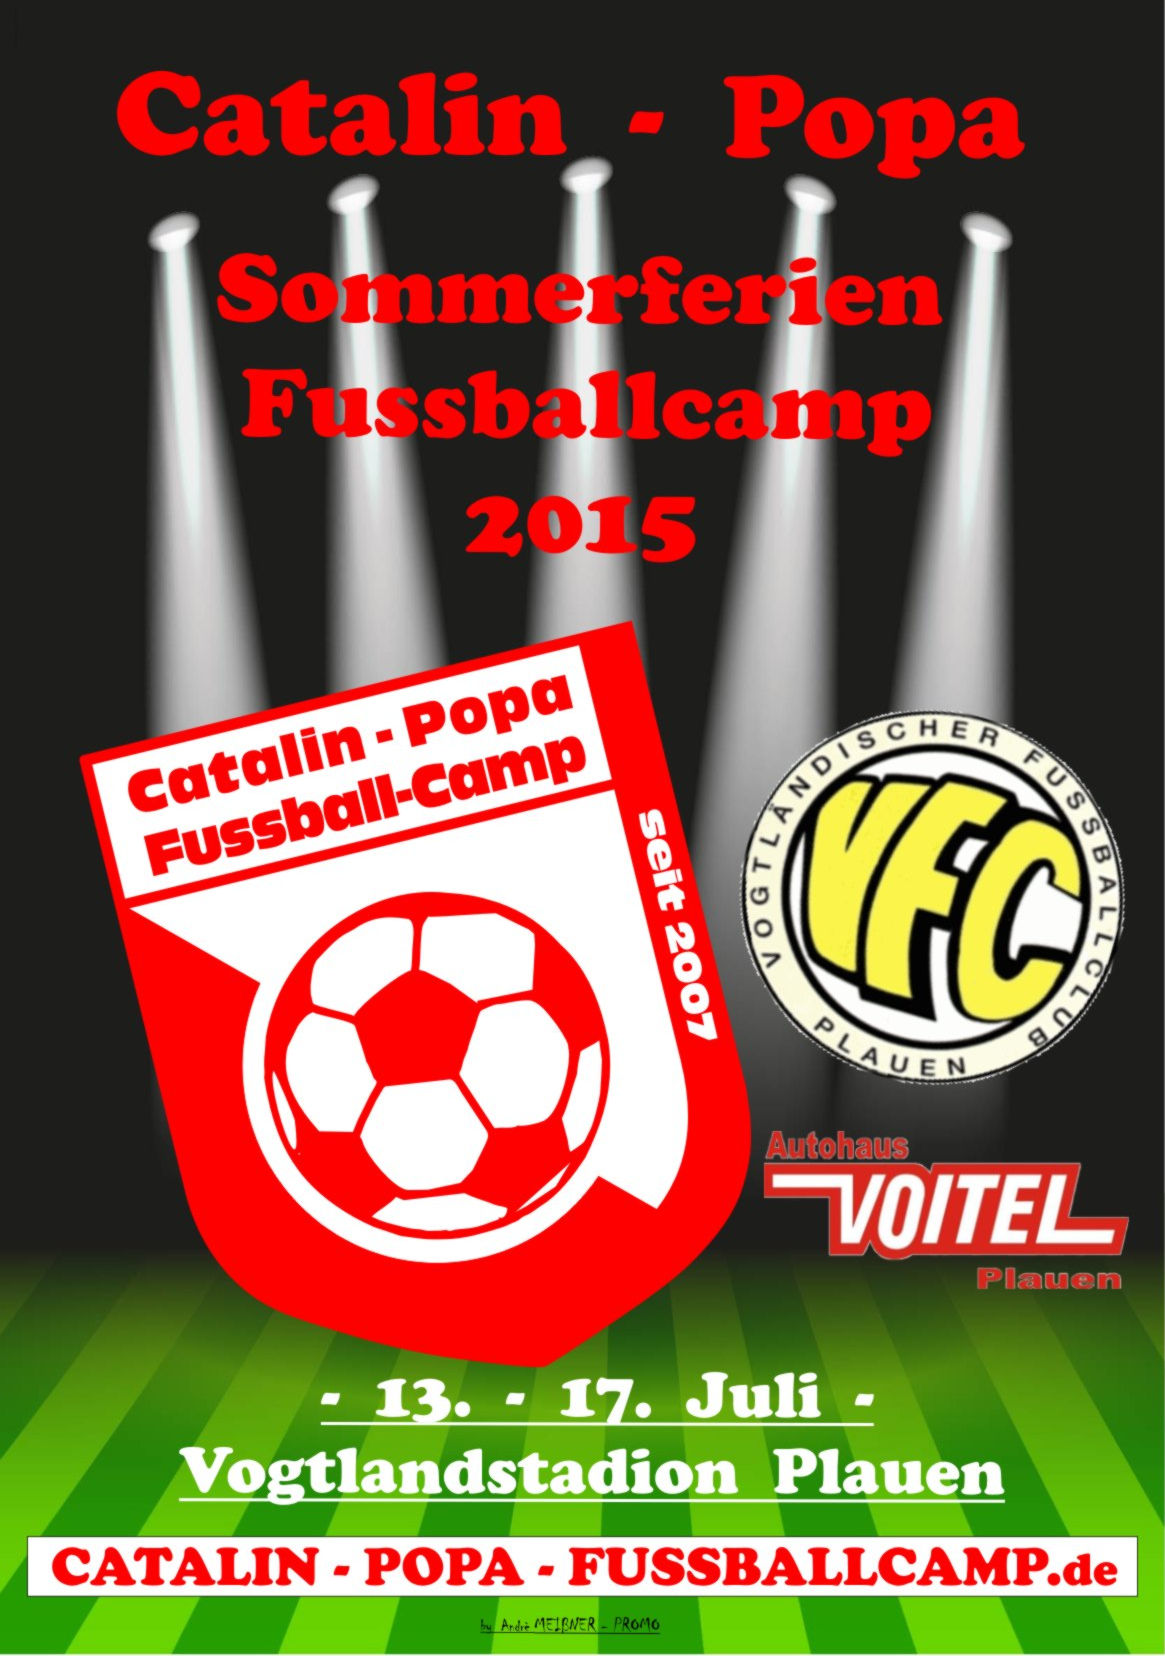 catalin popa fussballcamp poster download. Black Bedroom Furniture Sets. Home Design Ideas